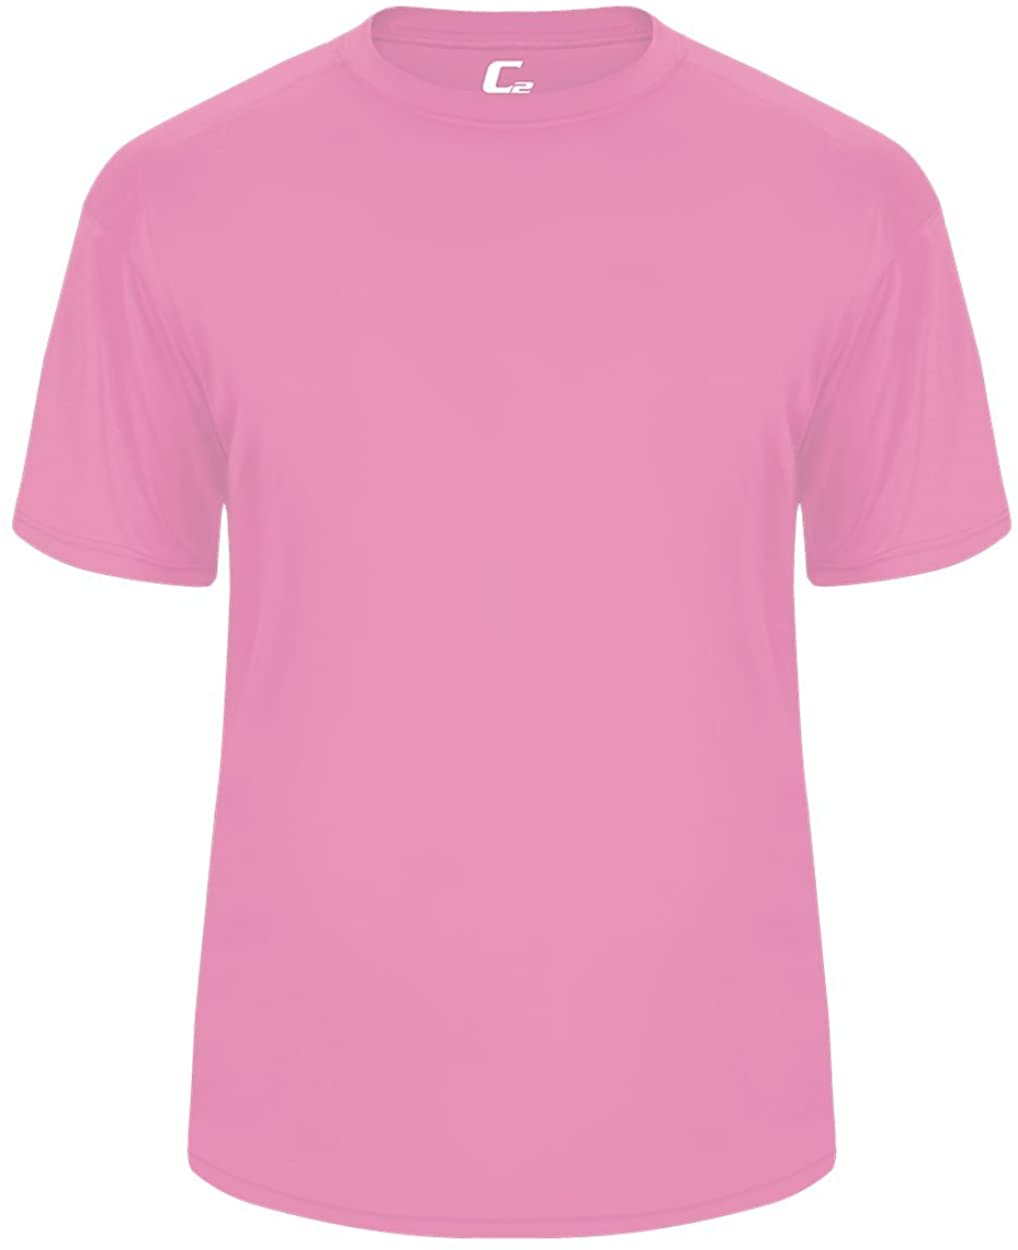 Pink Youth Medium Short Sleeve Performance Wicking Athletic Sports Shirt/Undershirt/Jersey